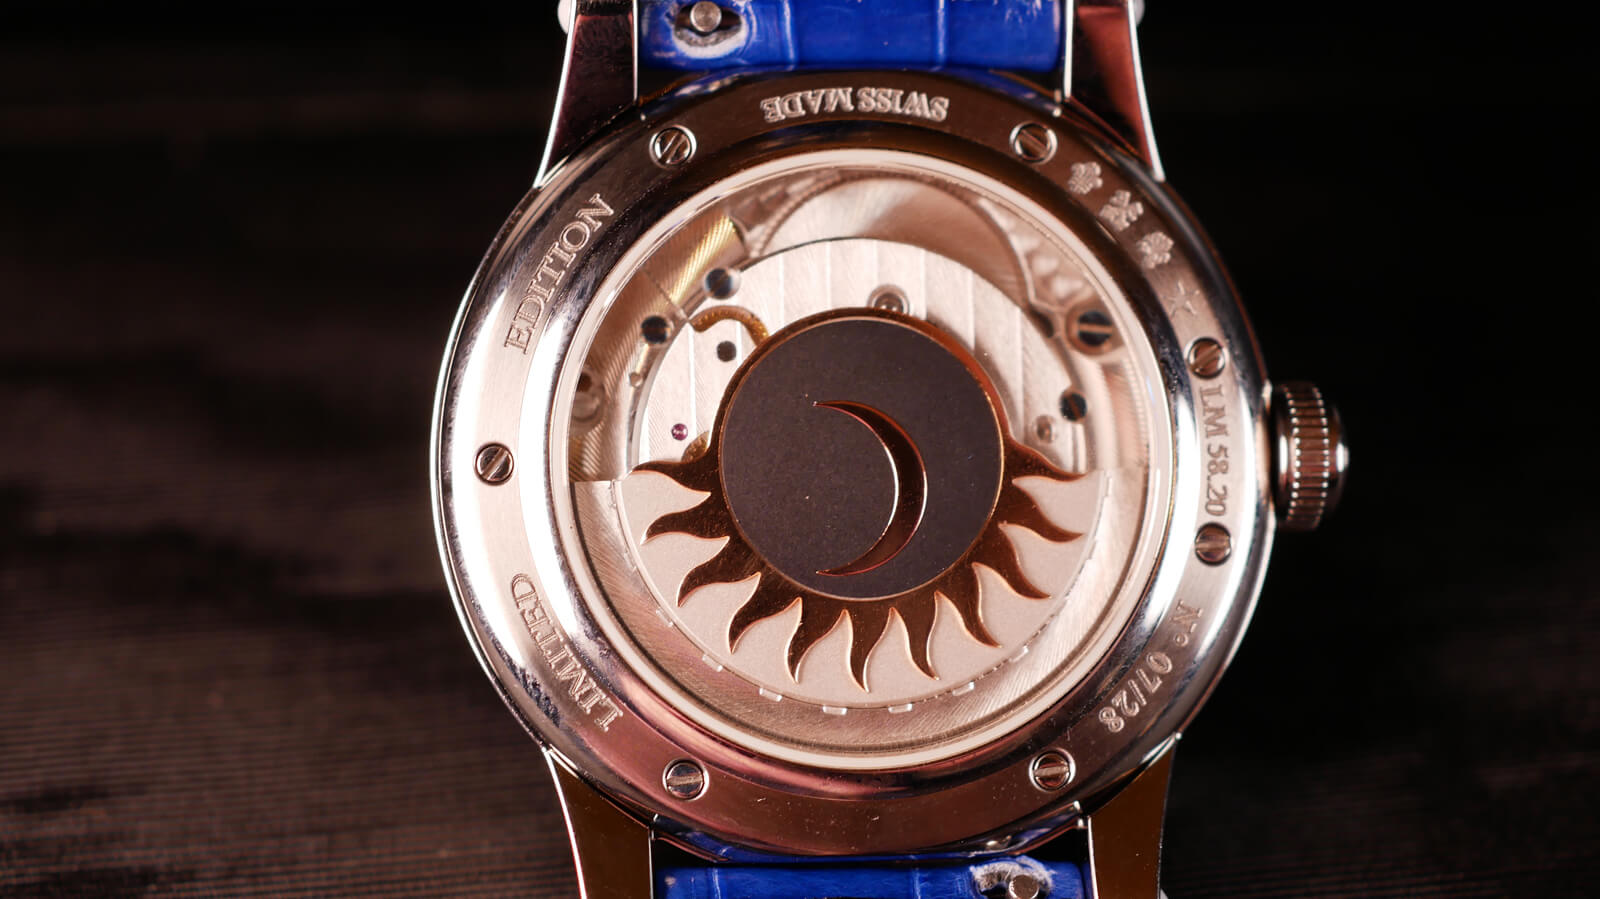 Louis Moinet Skydance - ladies' watch with automatic movement